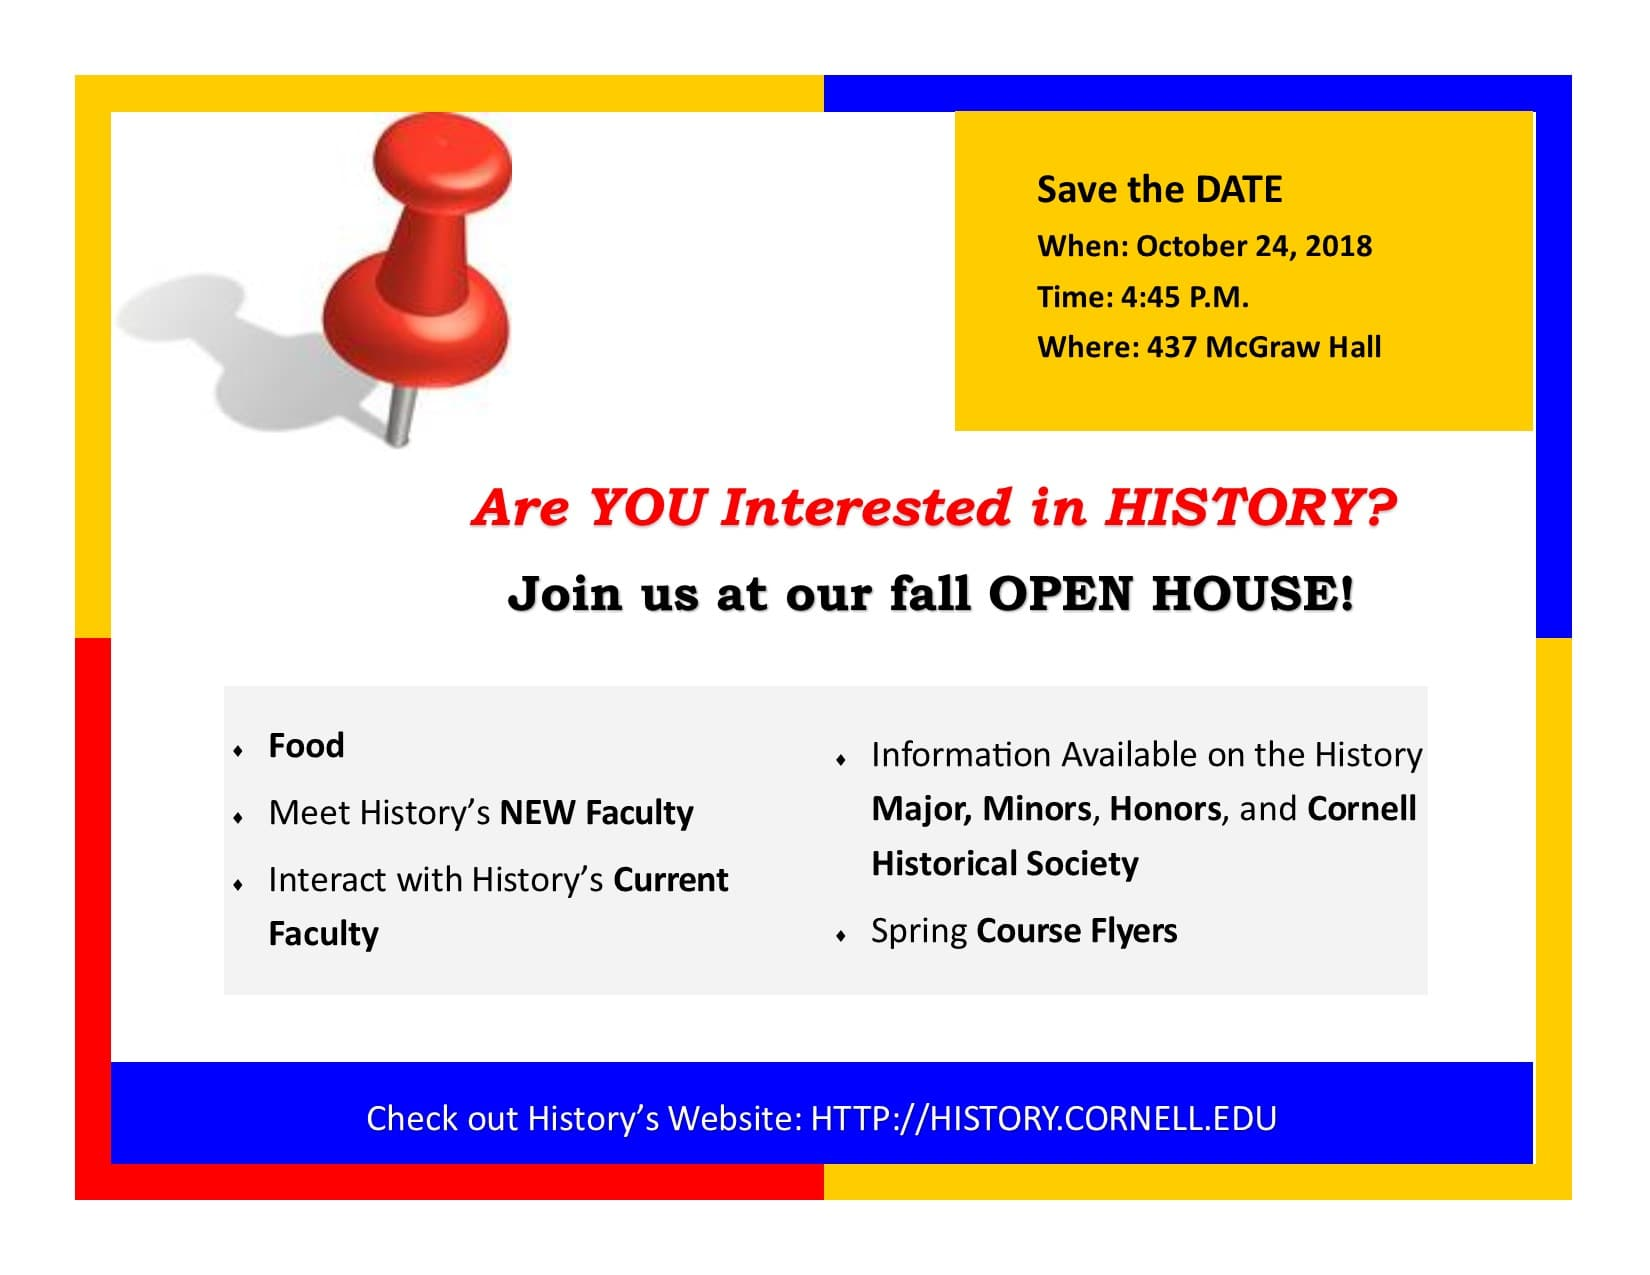 History's Open House scheduled for October 24 at 4:45 in 437 McGraw Hall